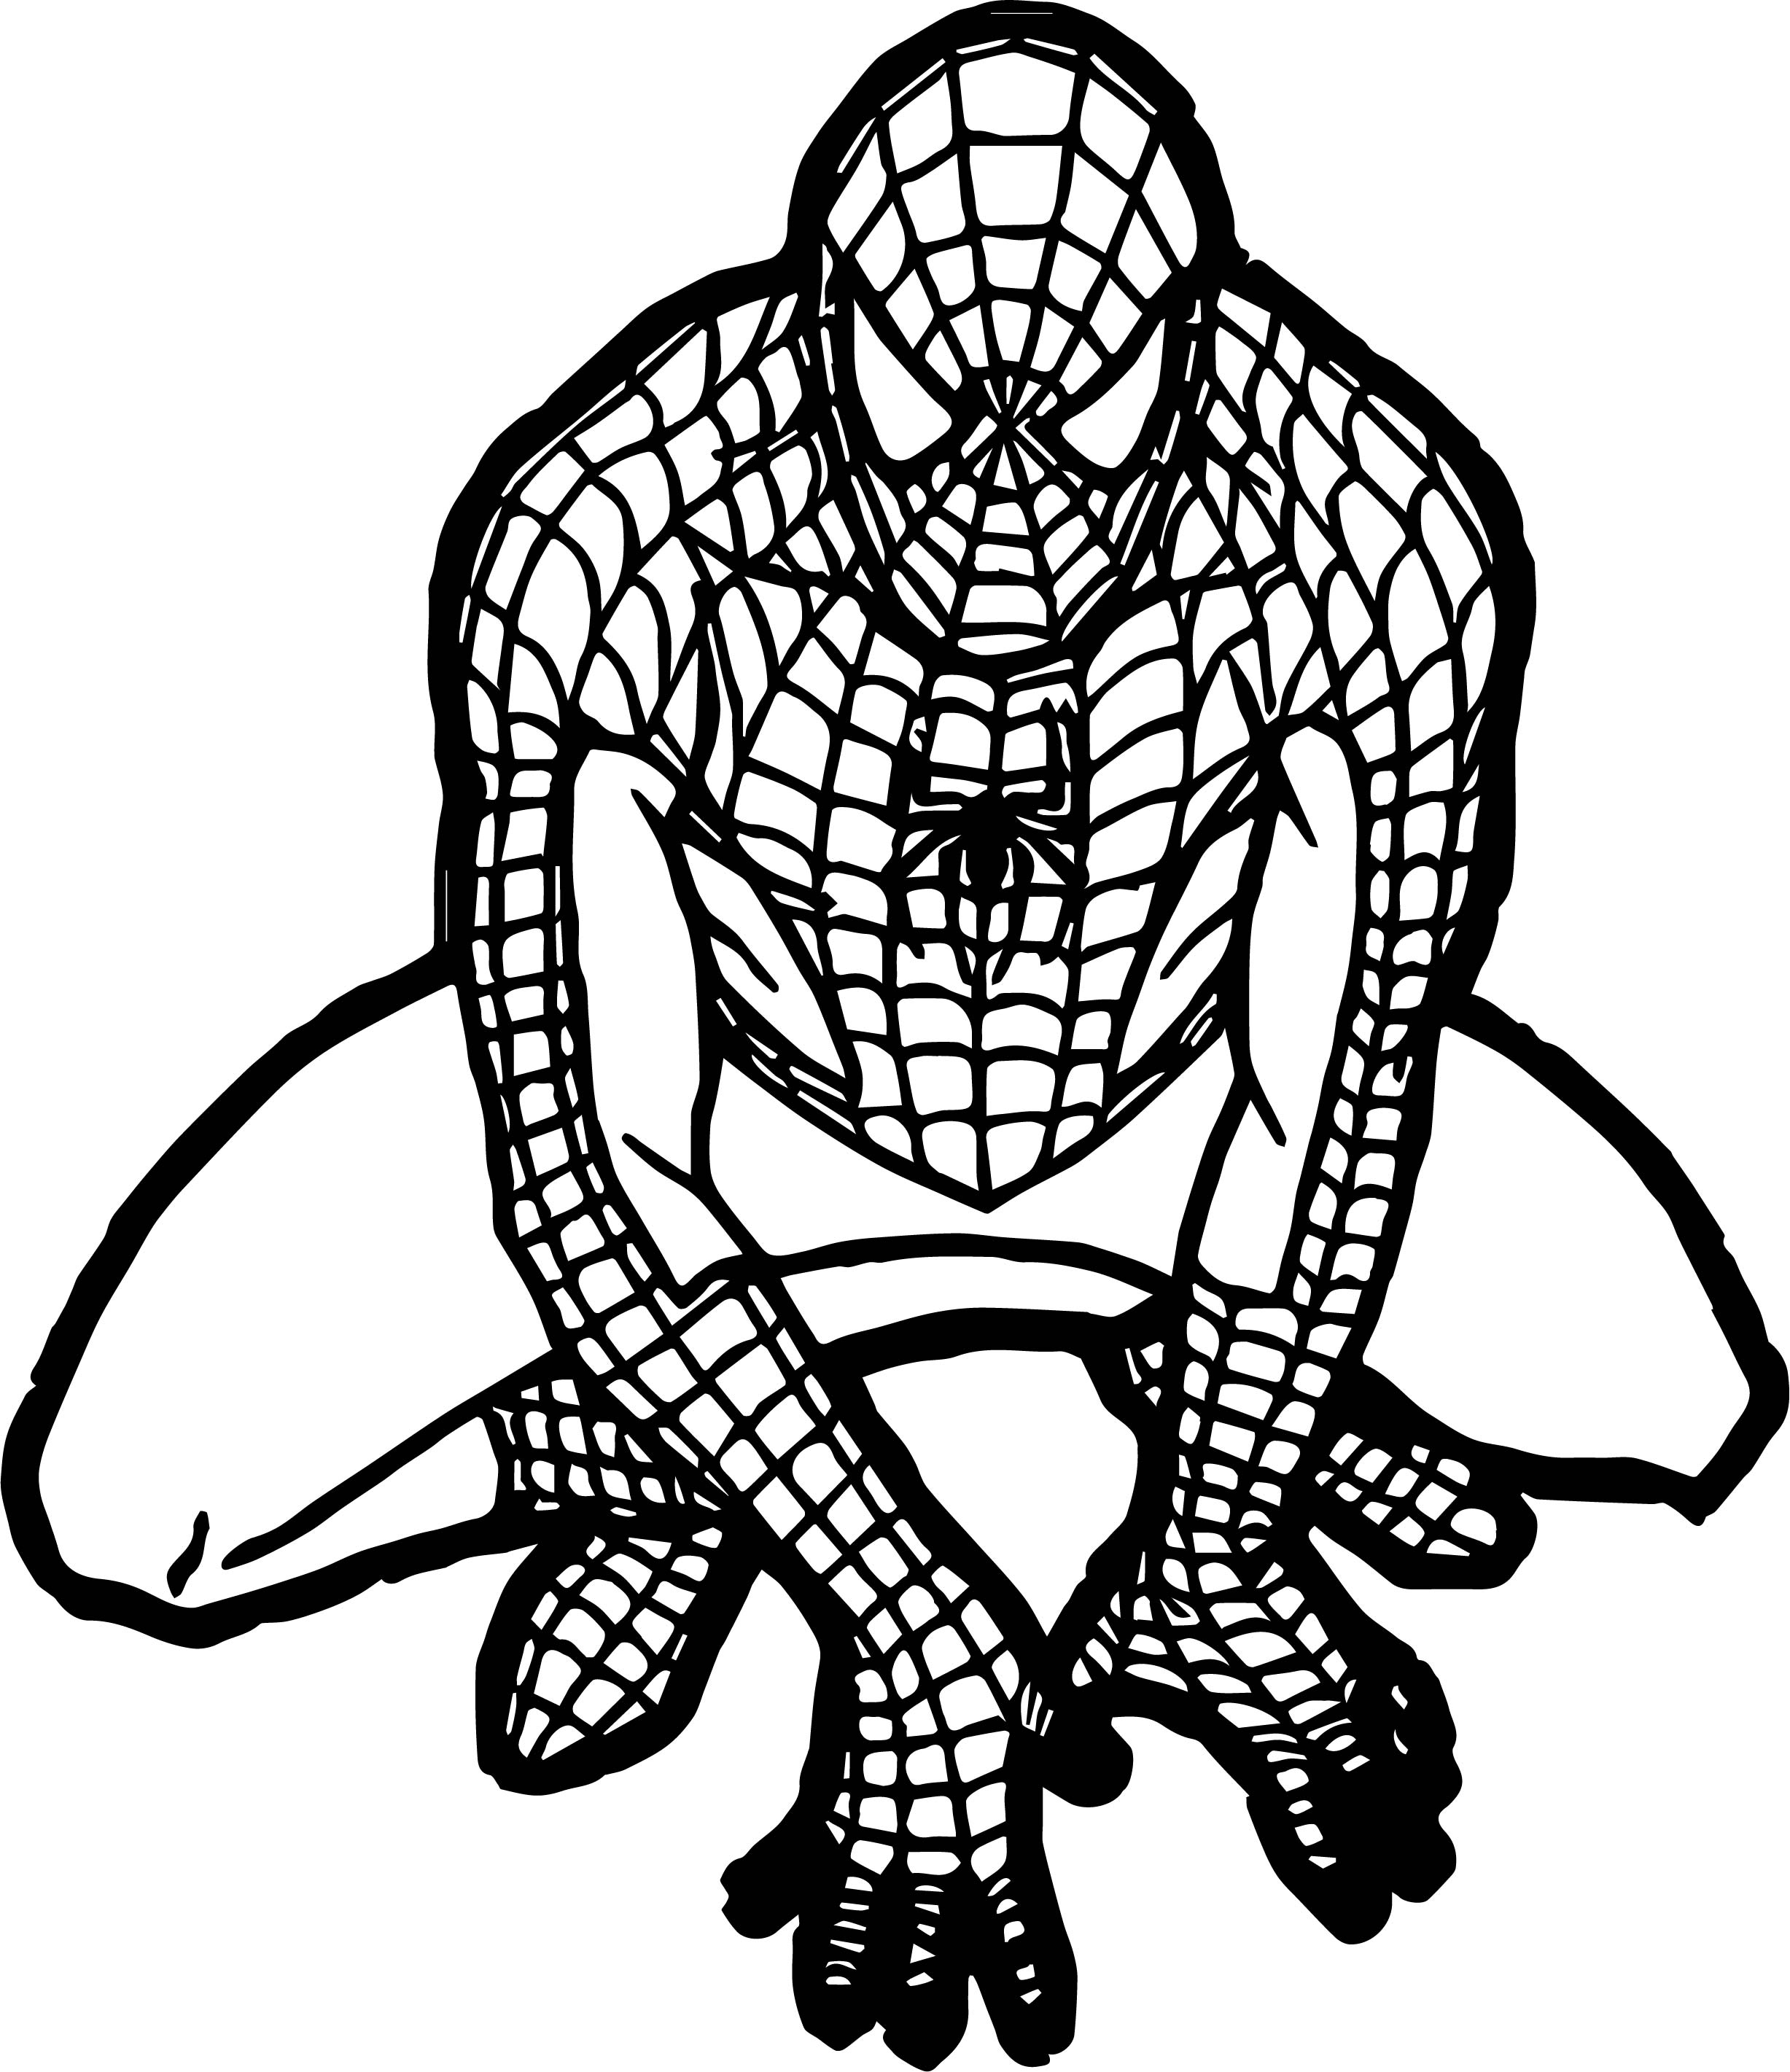 Baby spiderman free spider man coloring page for Baby spiderman coloring pages